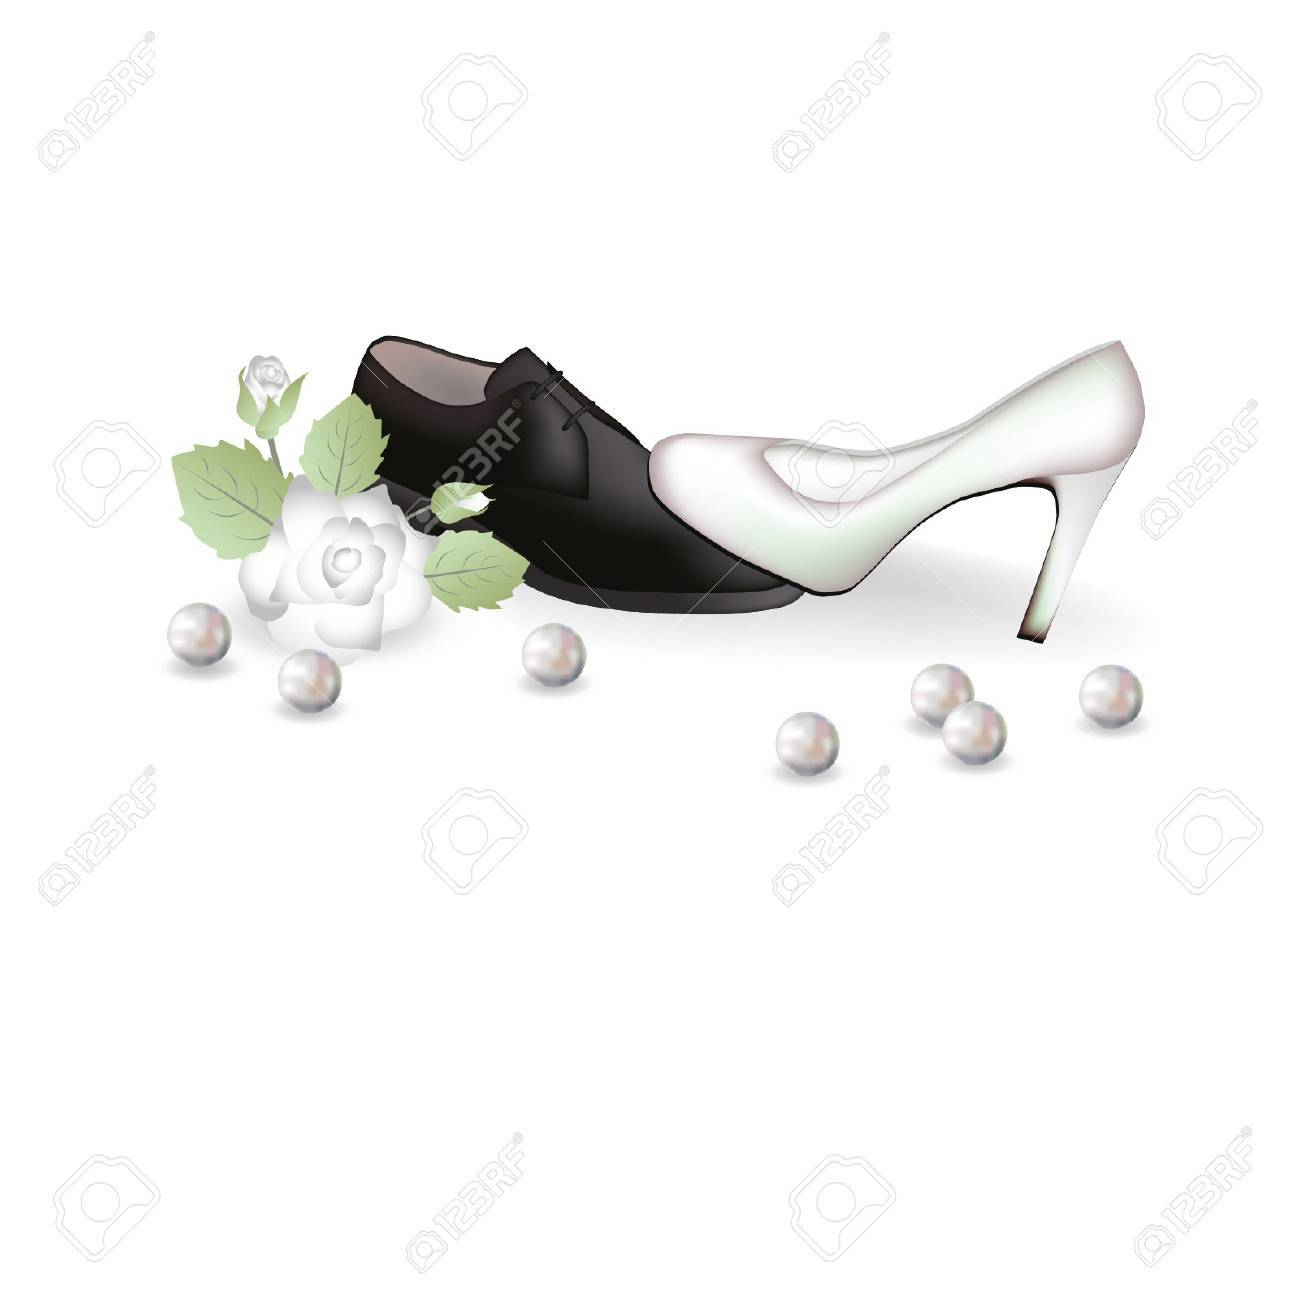 dc576fcf3b81a Wedding shoes and a rose illustration